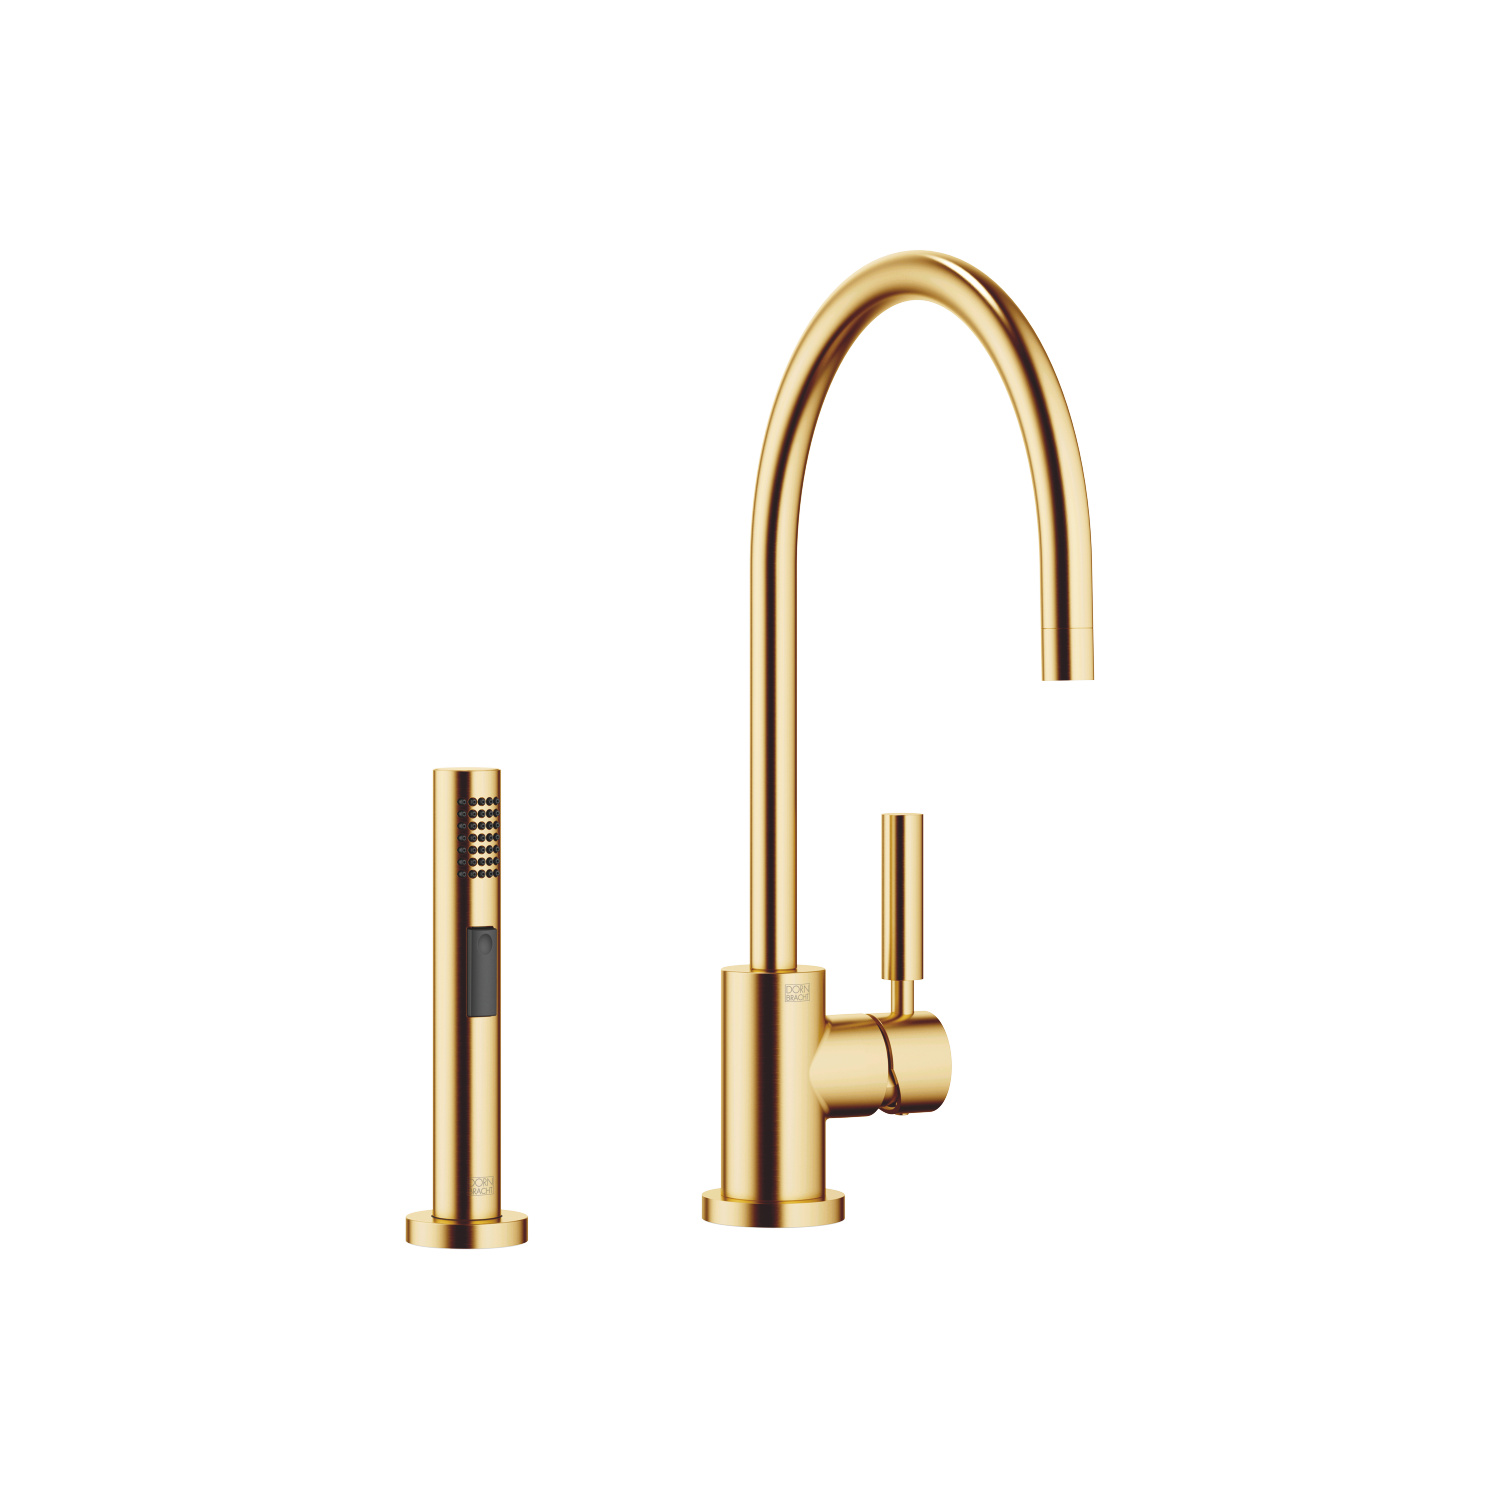 Single-lever mixer with side spray set - Brushed Durabrass